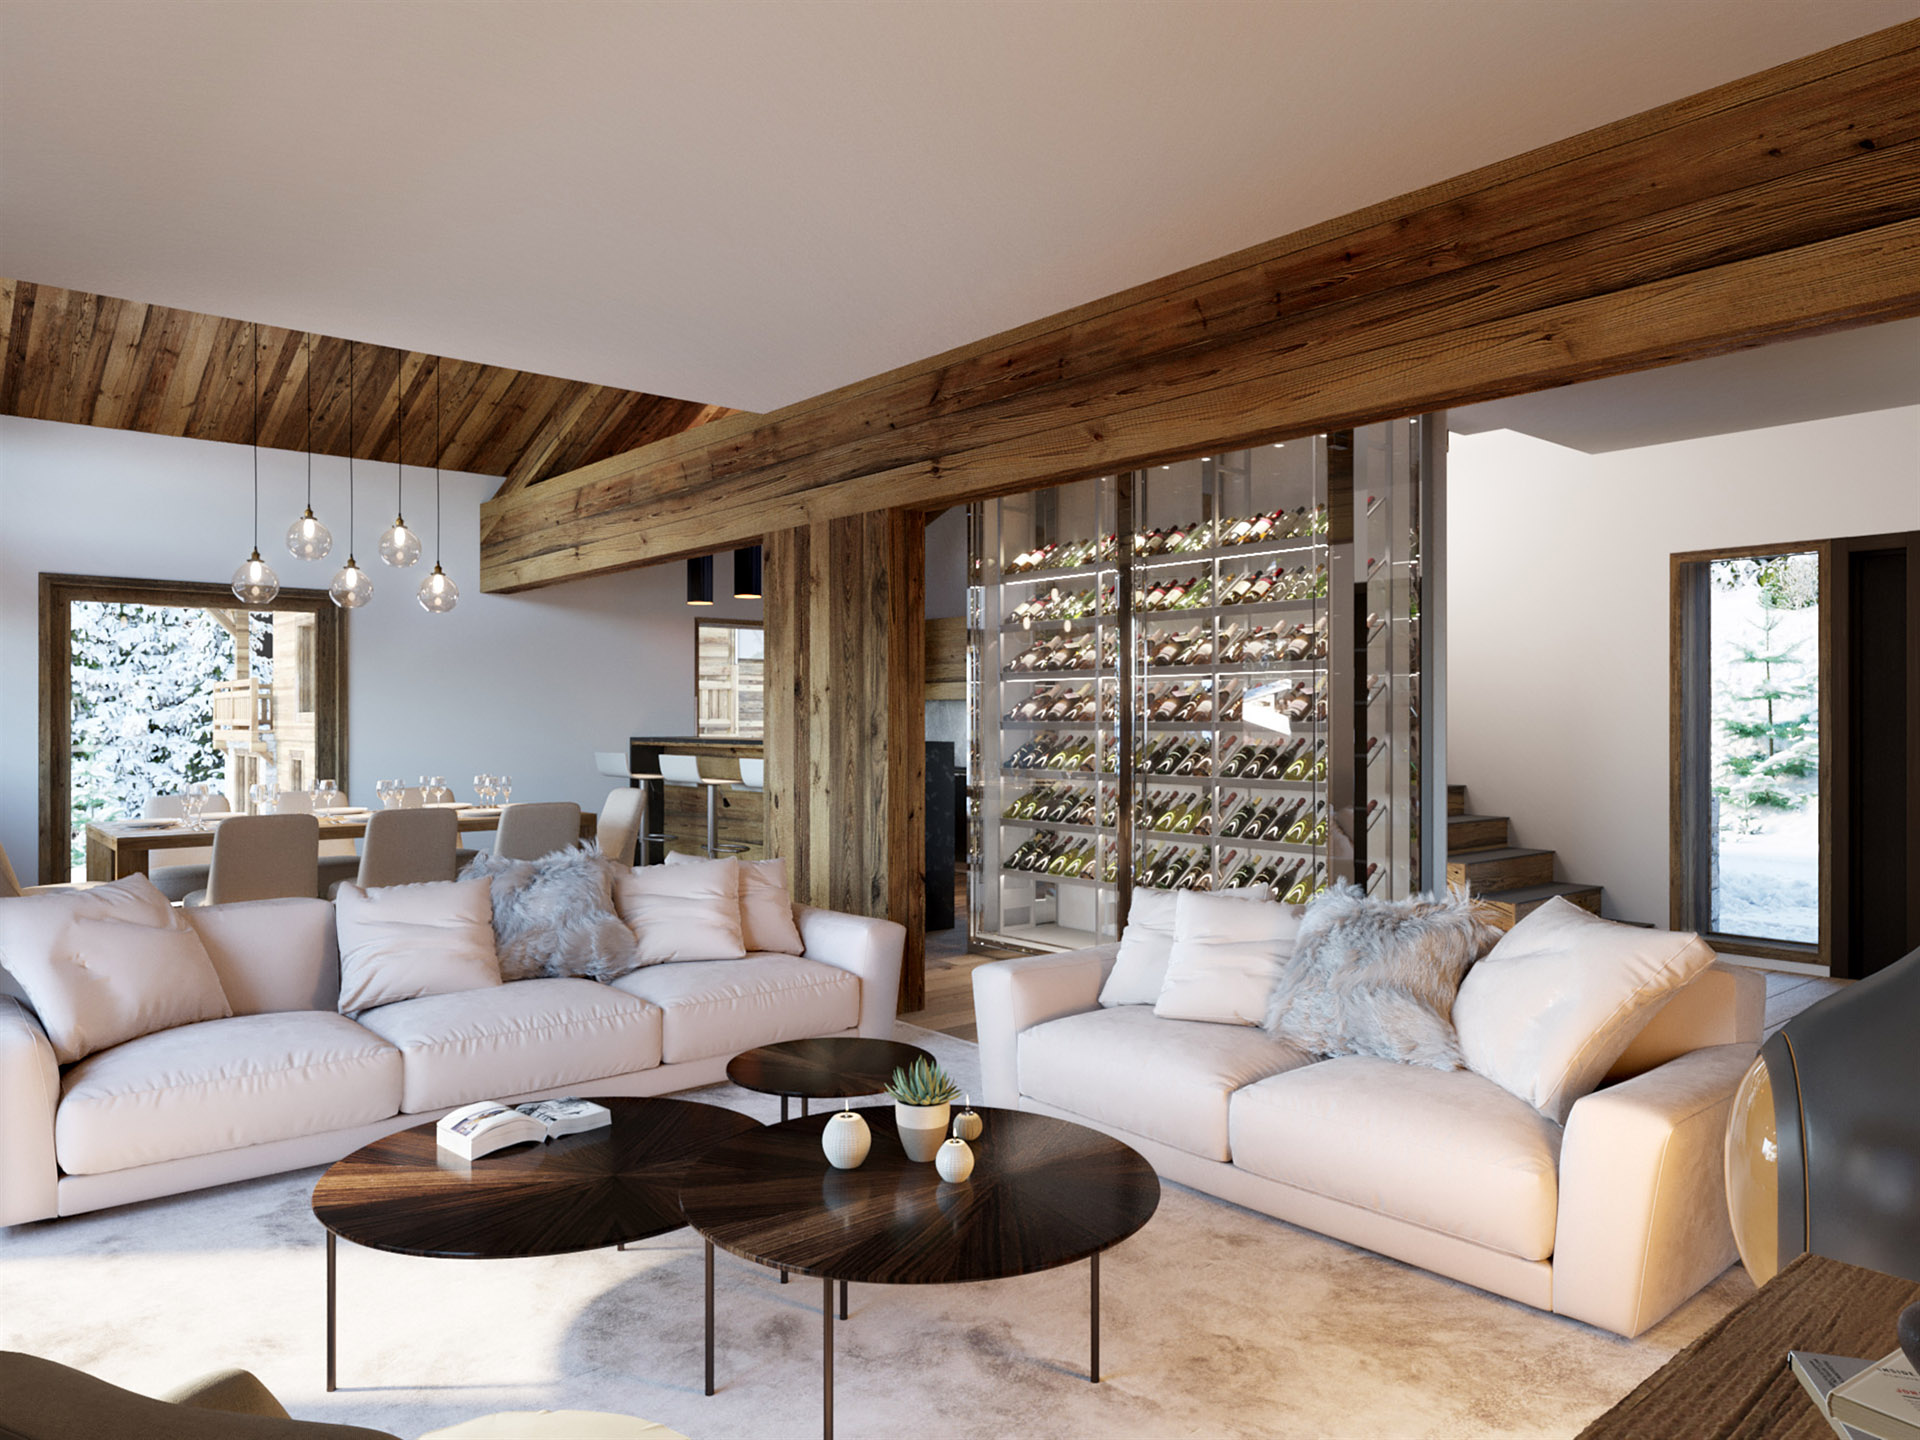 3D visualization of a living room and its wine cellar in a mountain chalet